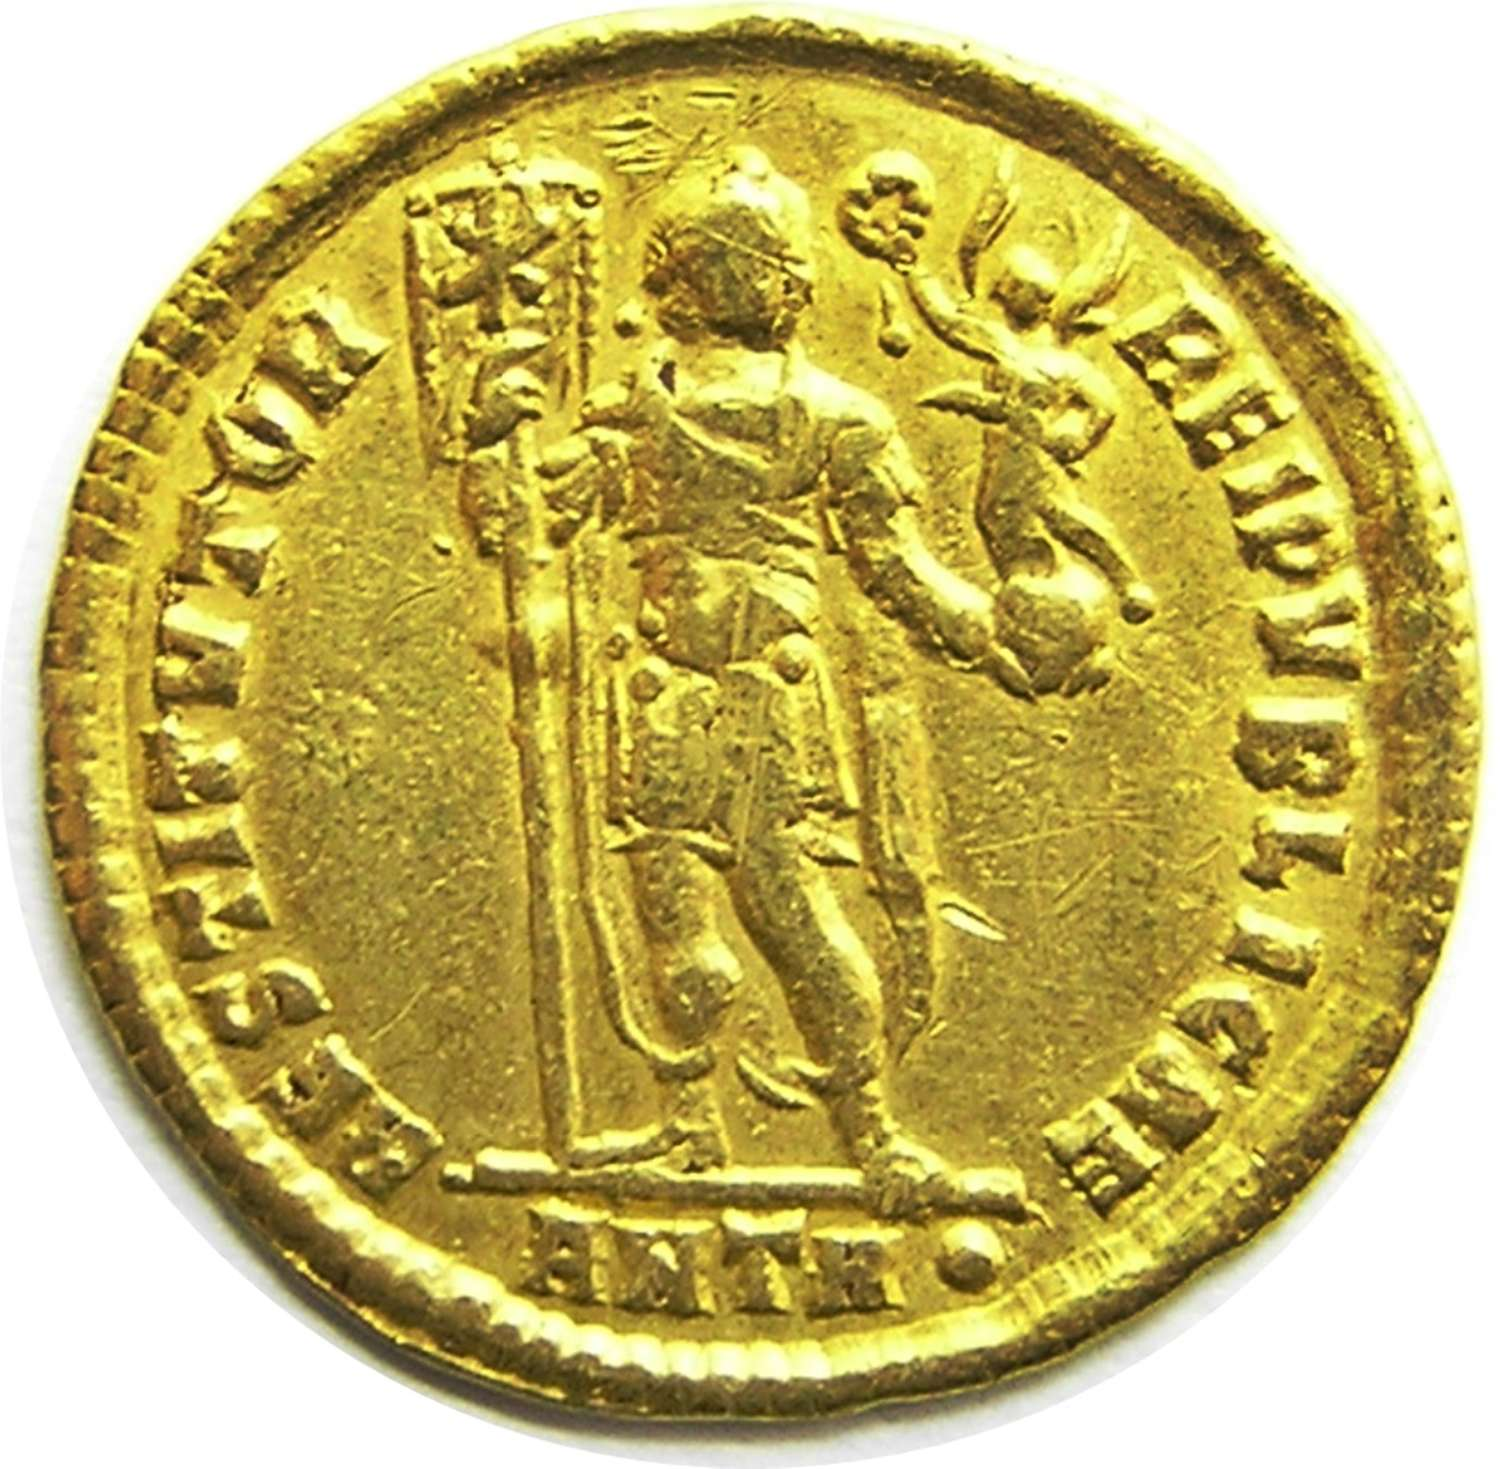 Roman Gold Solidus of Emperor Valentinian minted in Antioch